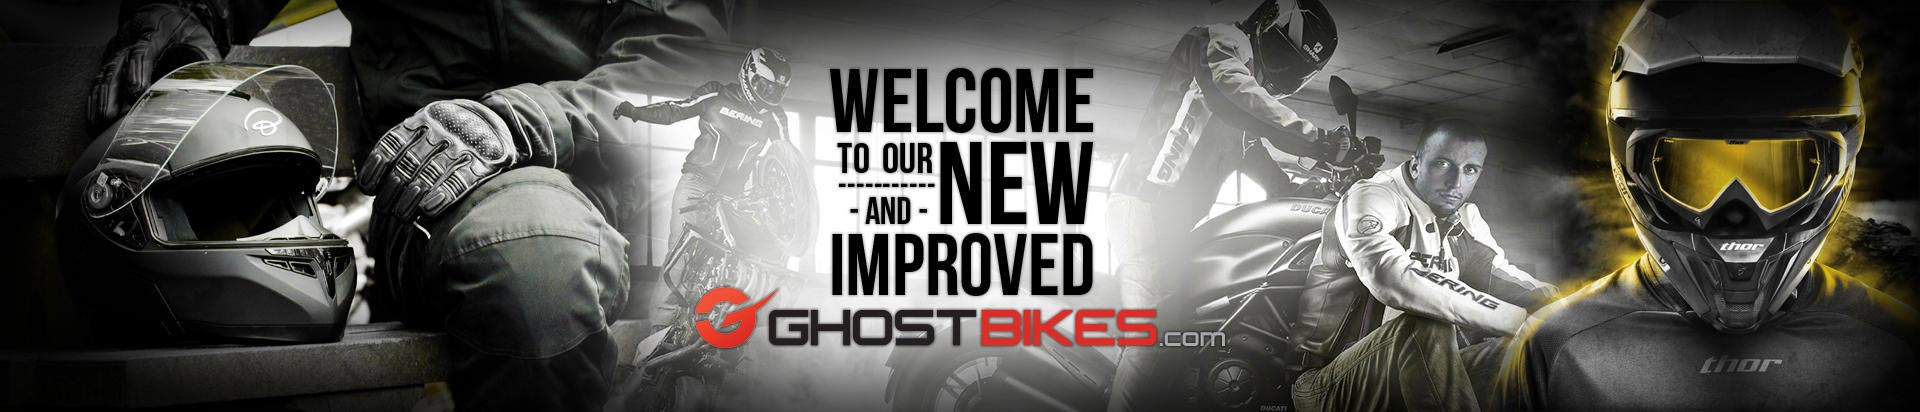 Welcome to the new GhostBikes!